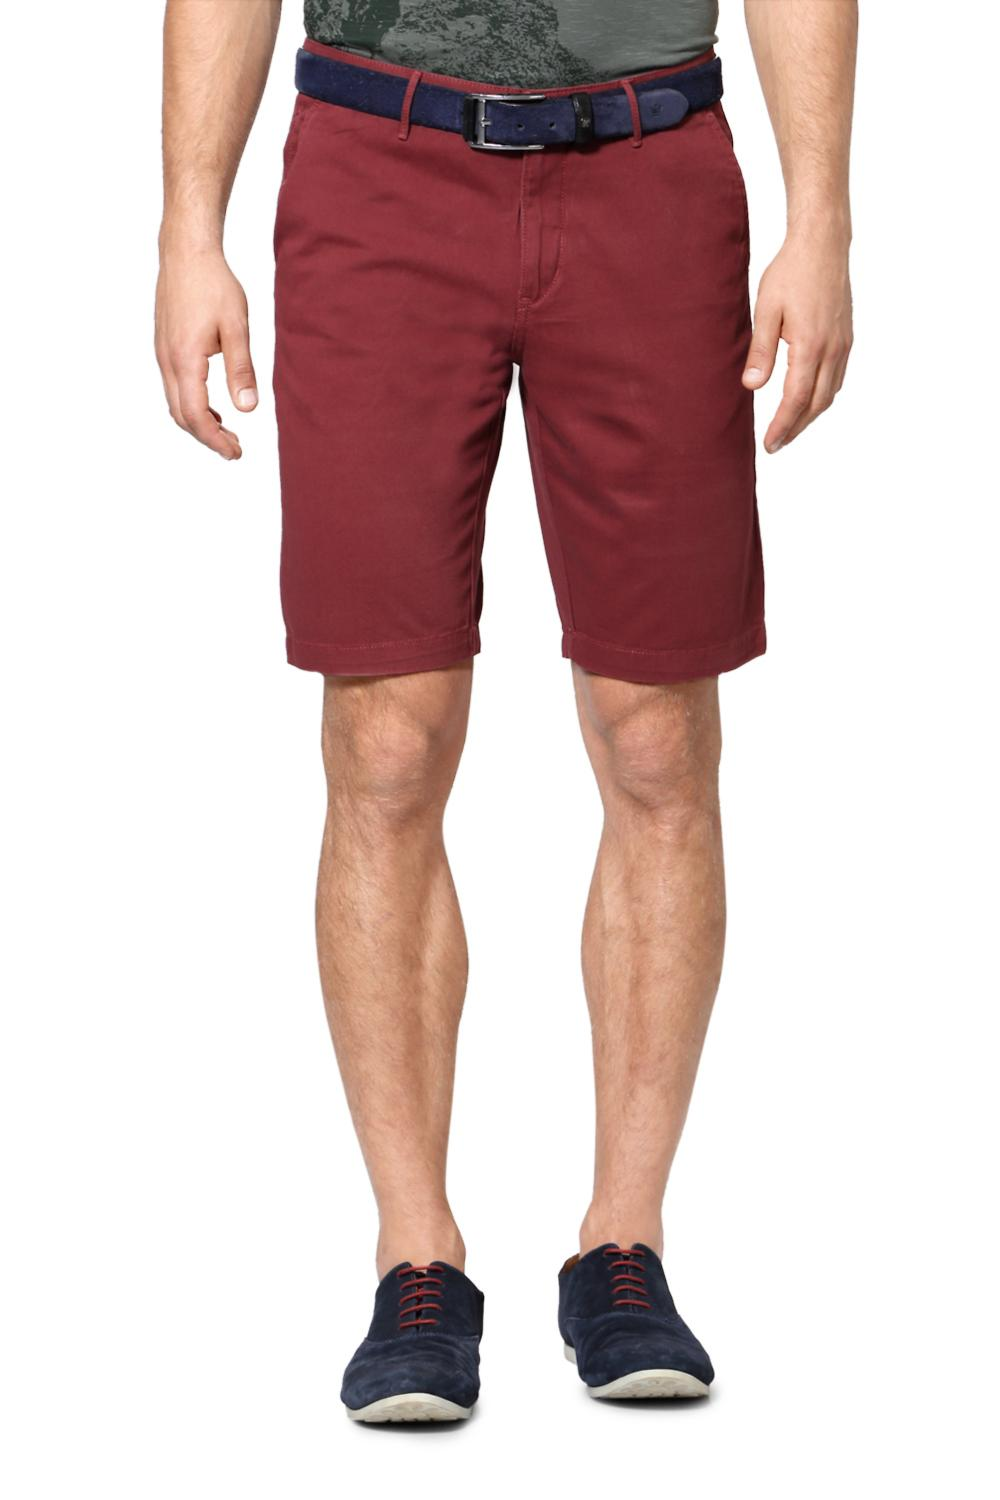 Solly Jeans Co Shorts, Allen Solly Maroon Shorts for Men at ...